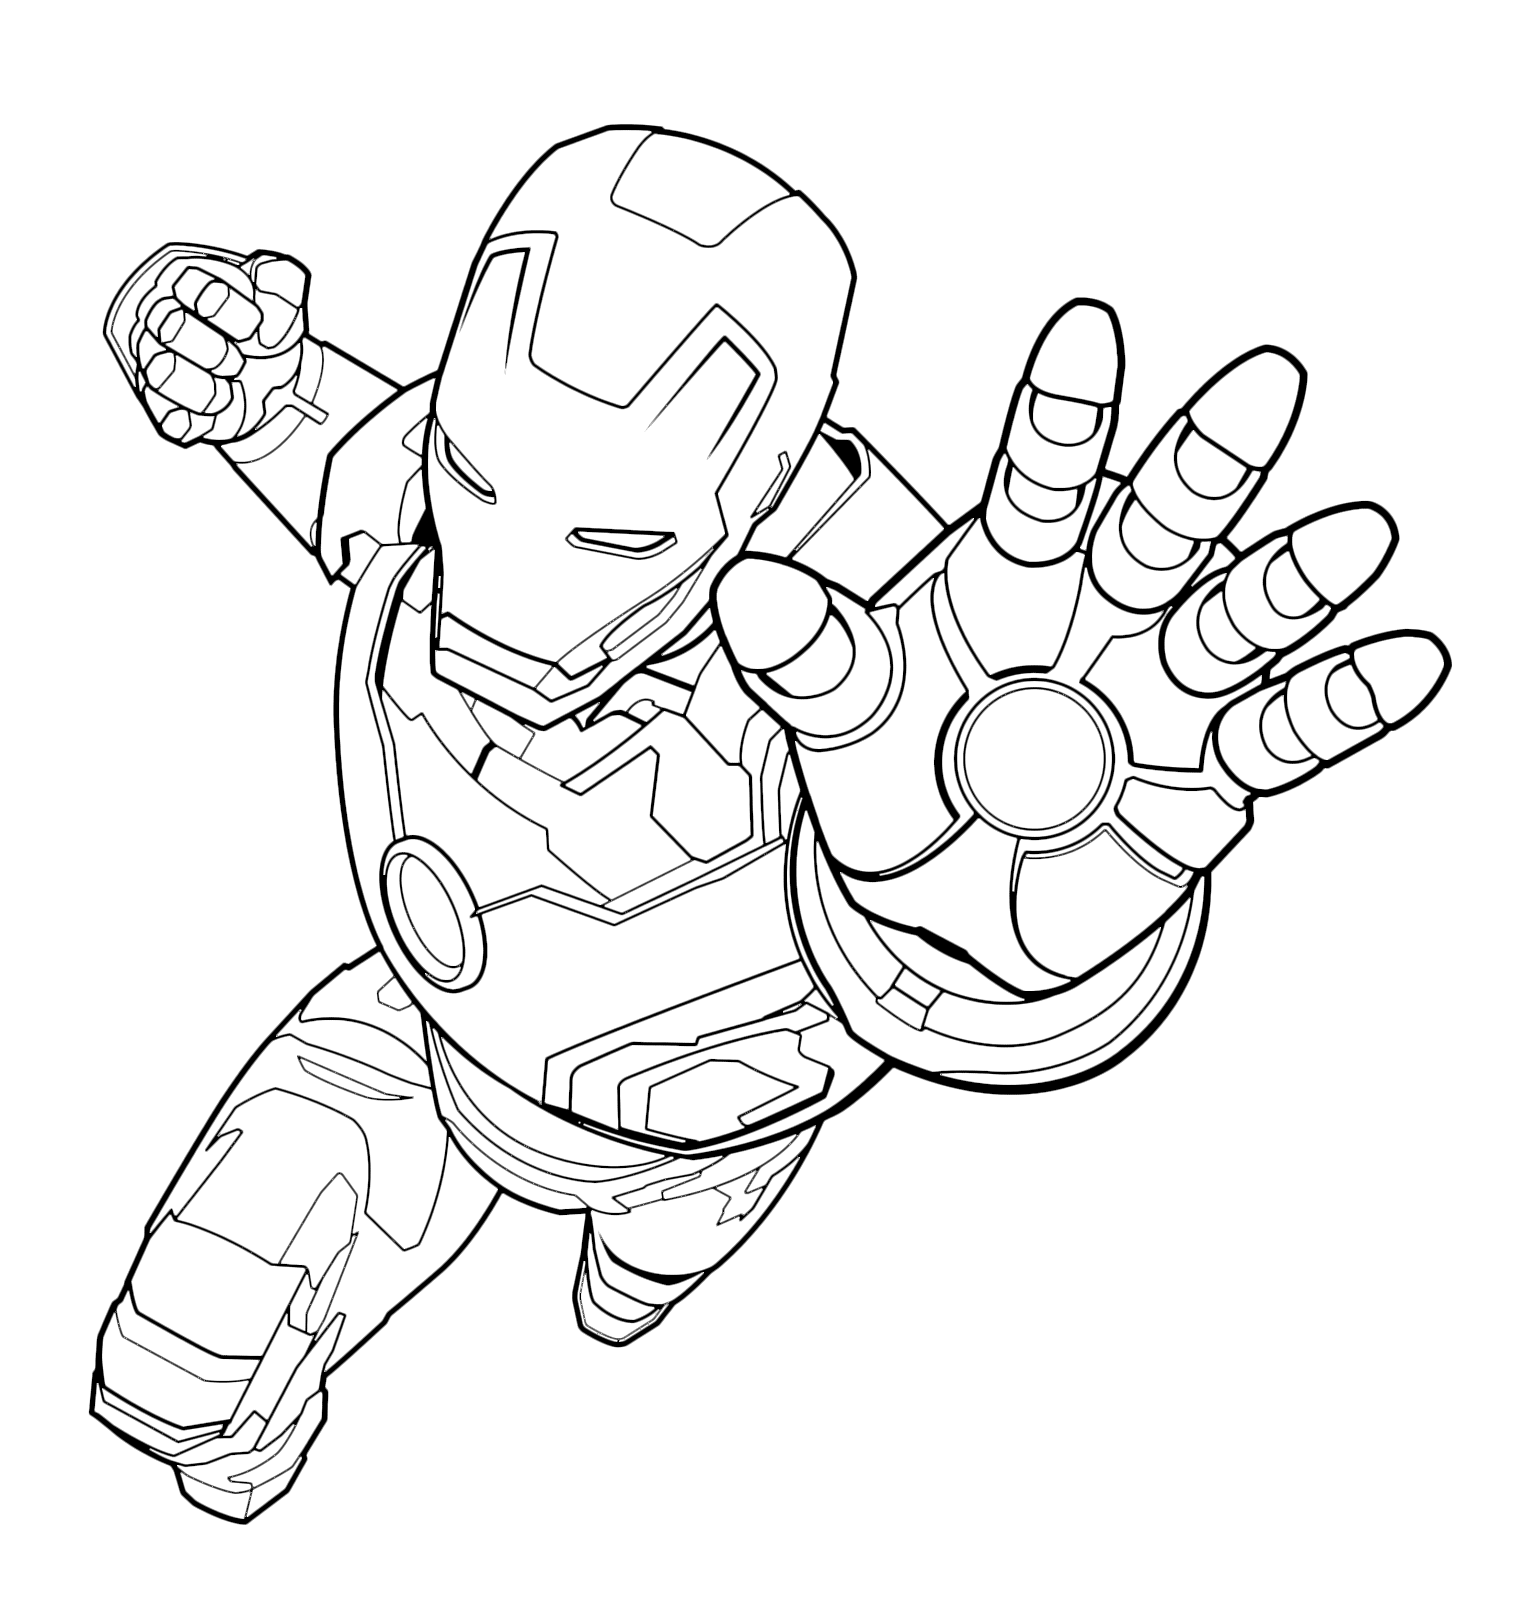 iron man images to colour coloring pages for kids free images iron man avengers to images iron colour man